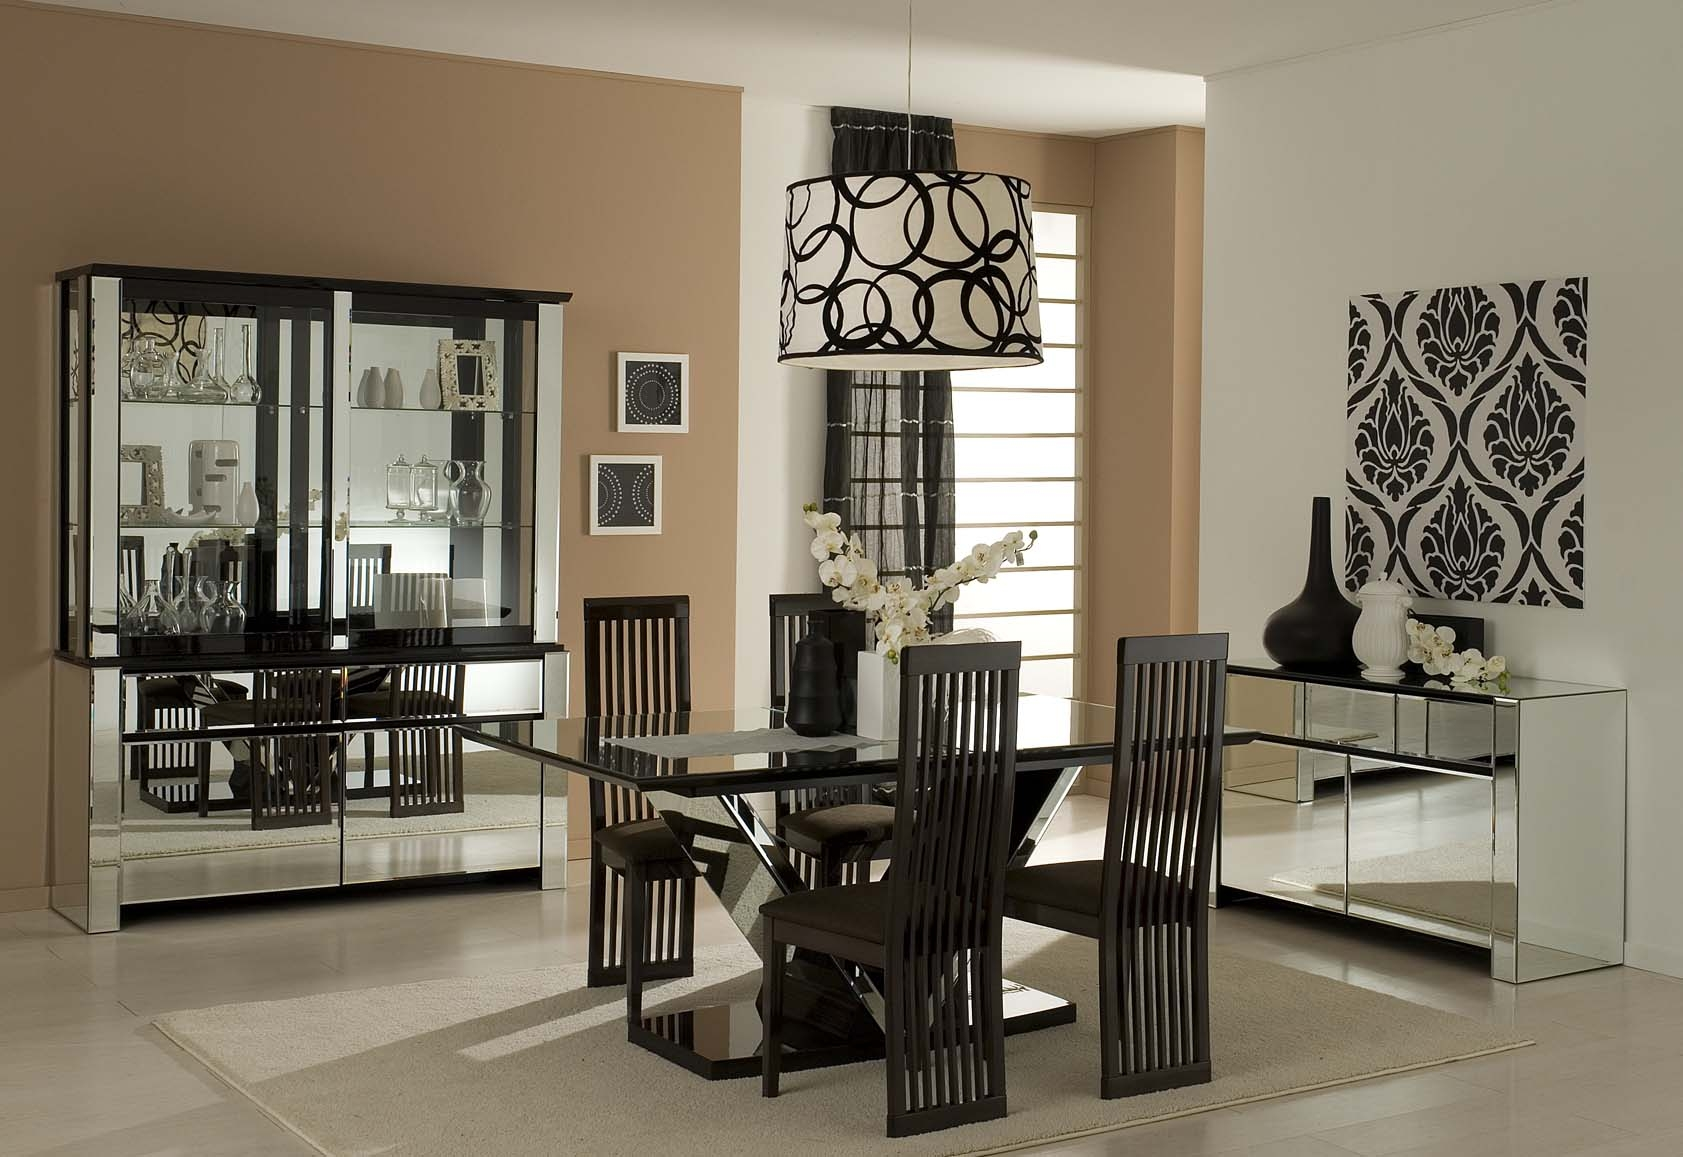 Decorating ideas for dining rooms Photo - 1